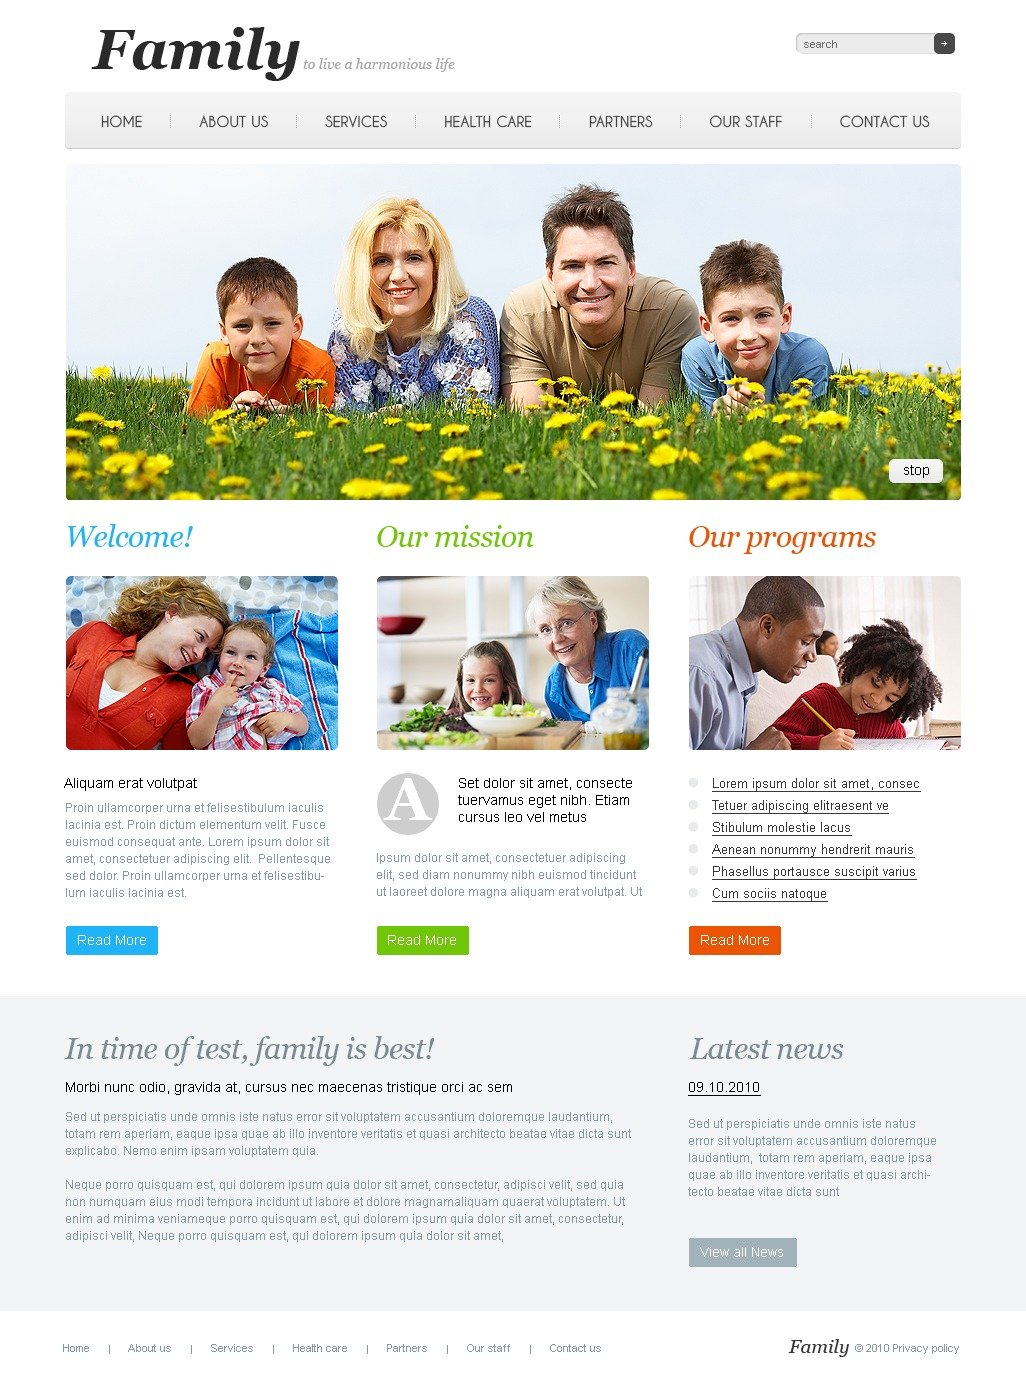 The Family Center Portal PSD Design 54491, one of the best PSD templates of its kind (family, most popular, flash 8, wide), also known as family center portal PSD template, site PSD template, harmony PSD template, hearth PSD template, home PSD template, children PSD template, baby PSD template, child PSD template, mother PSD template, father PSD template, grandparents PSD template, relatives PSD template, relationship PSD template, close care PSD template, happiness PSD template, education PSD template, youth PSD template, health PSD template, kids PSD template, fun PSD template, advices PSD template, events PSD template, entertainment PSD template, information PSD template, support PSD template, directory PSD template, psychology PSD template, s and related with family center portal, site, harmony, hearth, home, children, baby, child, mother, father, grandparents, relatives, relationship, close care, happiness, education, youth, health, kids, fun, advices, events, entertainment, information, support, directory, psychology, s, etc.